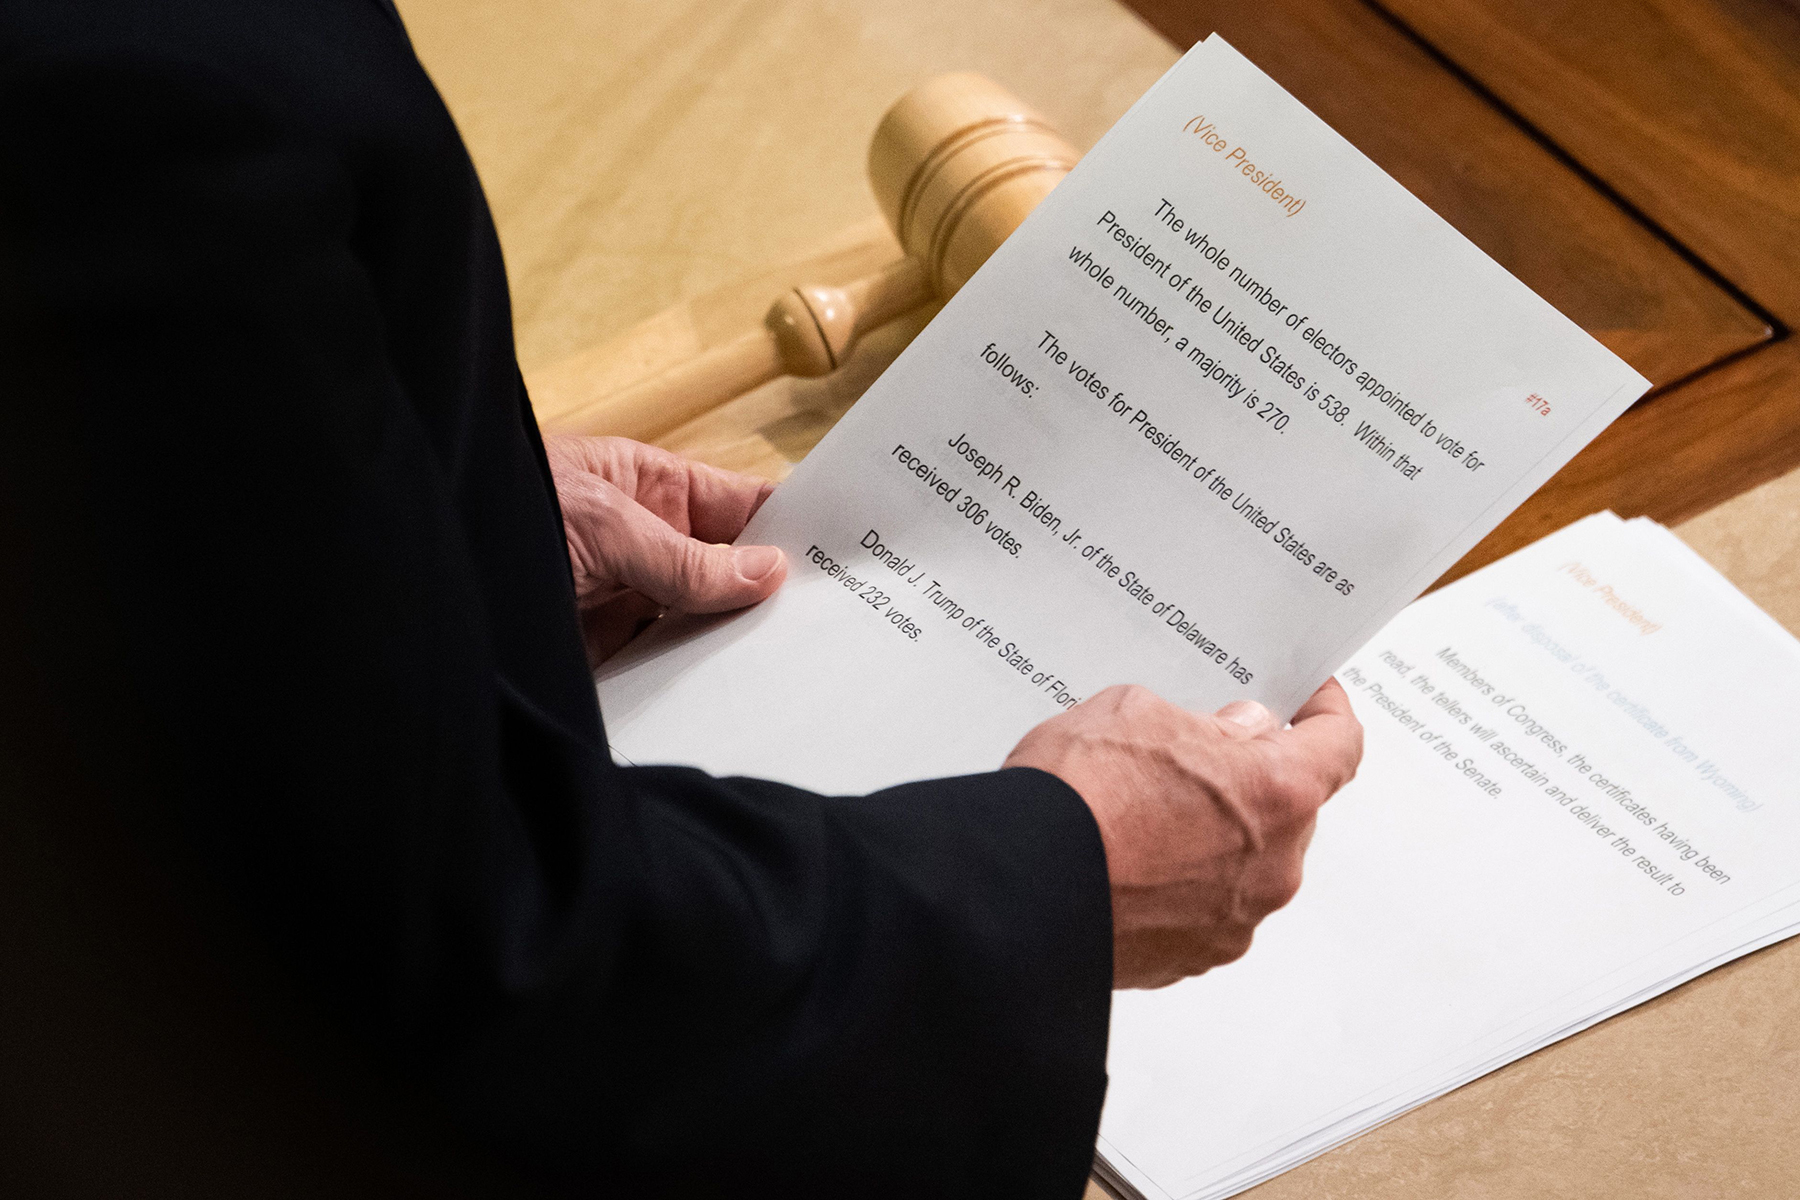 US Vice President Mike Pence reads a sheet of paper with the final electoral vote counts declaring Joe Biden as the next US President during a joint session of Congress to count the electoral votes for President, at the US Capitol in Washington, DC, January 7, 2021. - US lawmakers formally certified on January 7, Joe Biden as the winner of the presidential election -- clearing the way for his inauguration on January 20. Republican Vice President Mike Pence certified the Electoral College count of 306 electors in favor of the Democrat against 232 in favor of outgoing Republican President Donald Trump. The tally followed a joint session of the House and Senate that was interrupted by supporters of the president who stormed the US Capitol, bringing violence and mayhem to the seat of government. (Photo by SAUL LOEB / AFP) (Photo by SAUL LOEB/AFP via Getty Images)